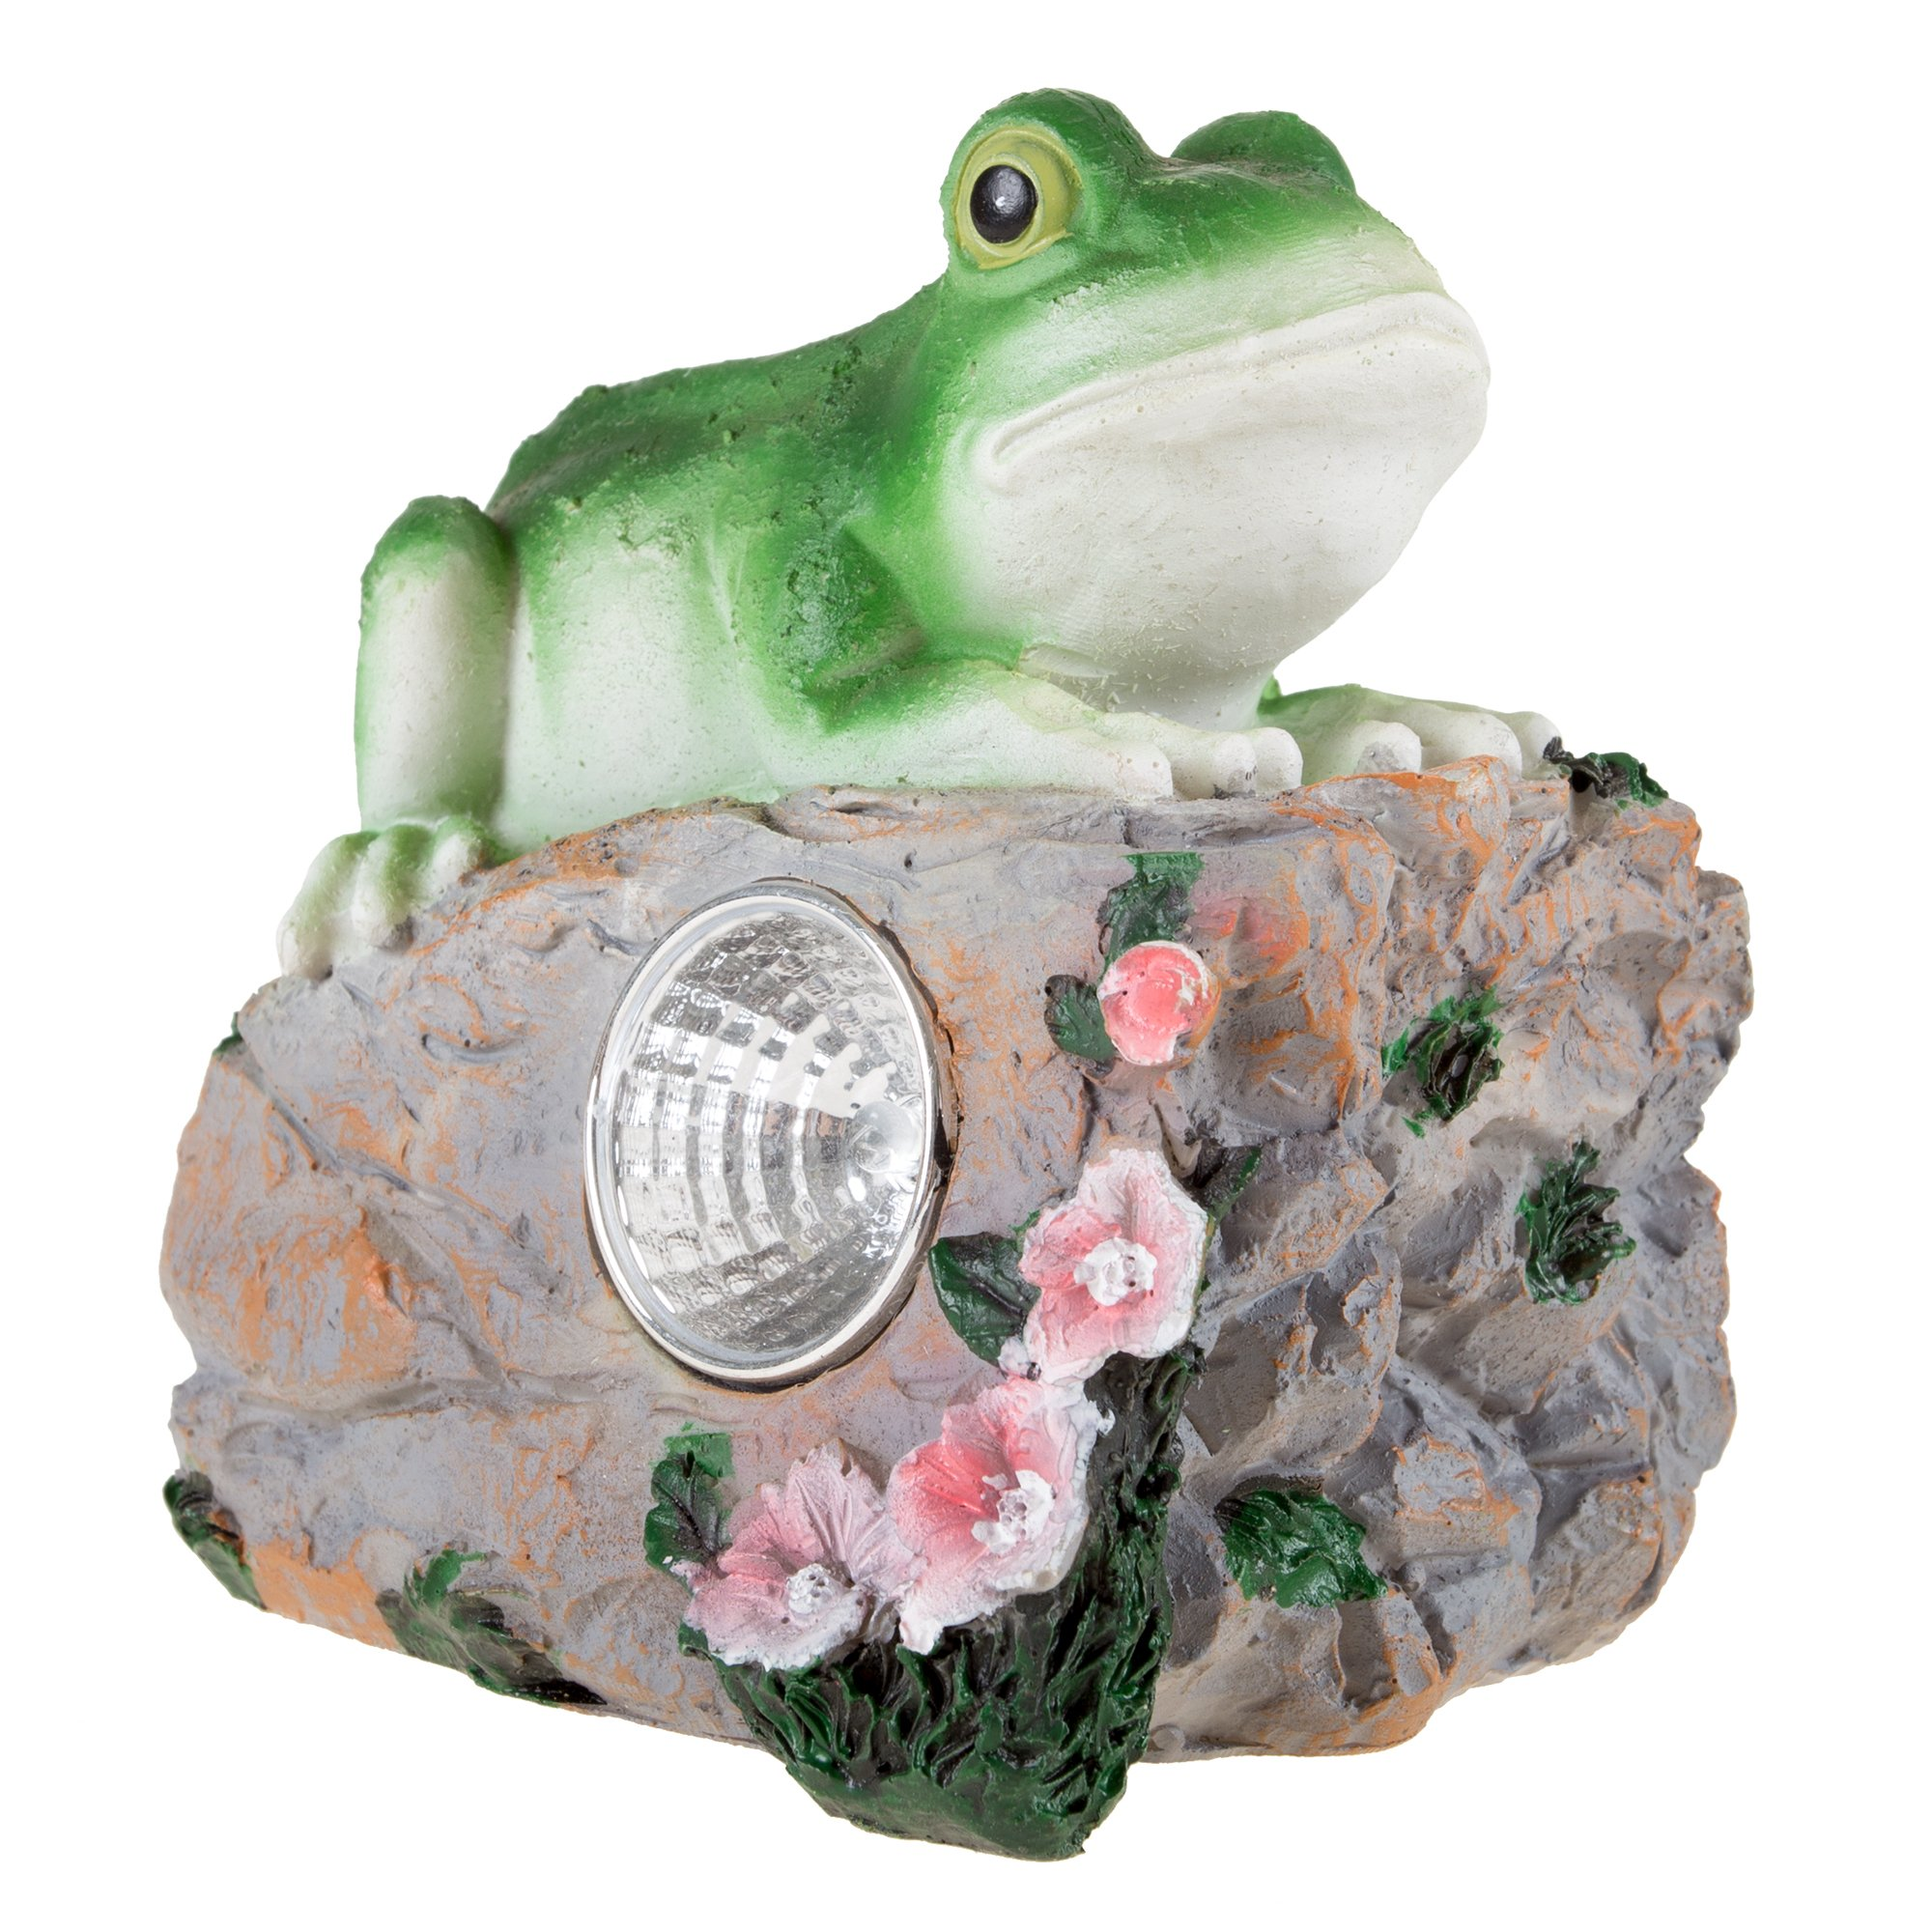 Yard Décor, Solar Outdoor LED Light and Battery Operated Statue for Garden, Patio, Lawn, and Yard by Pure Garden - Frog Statue